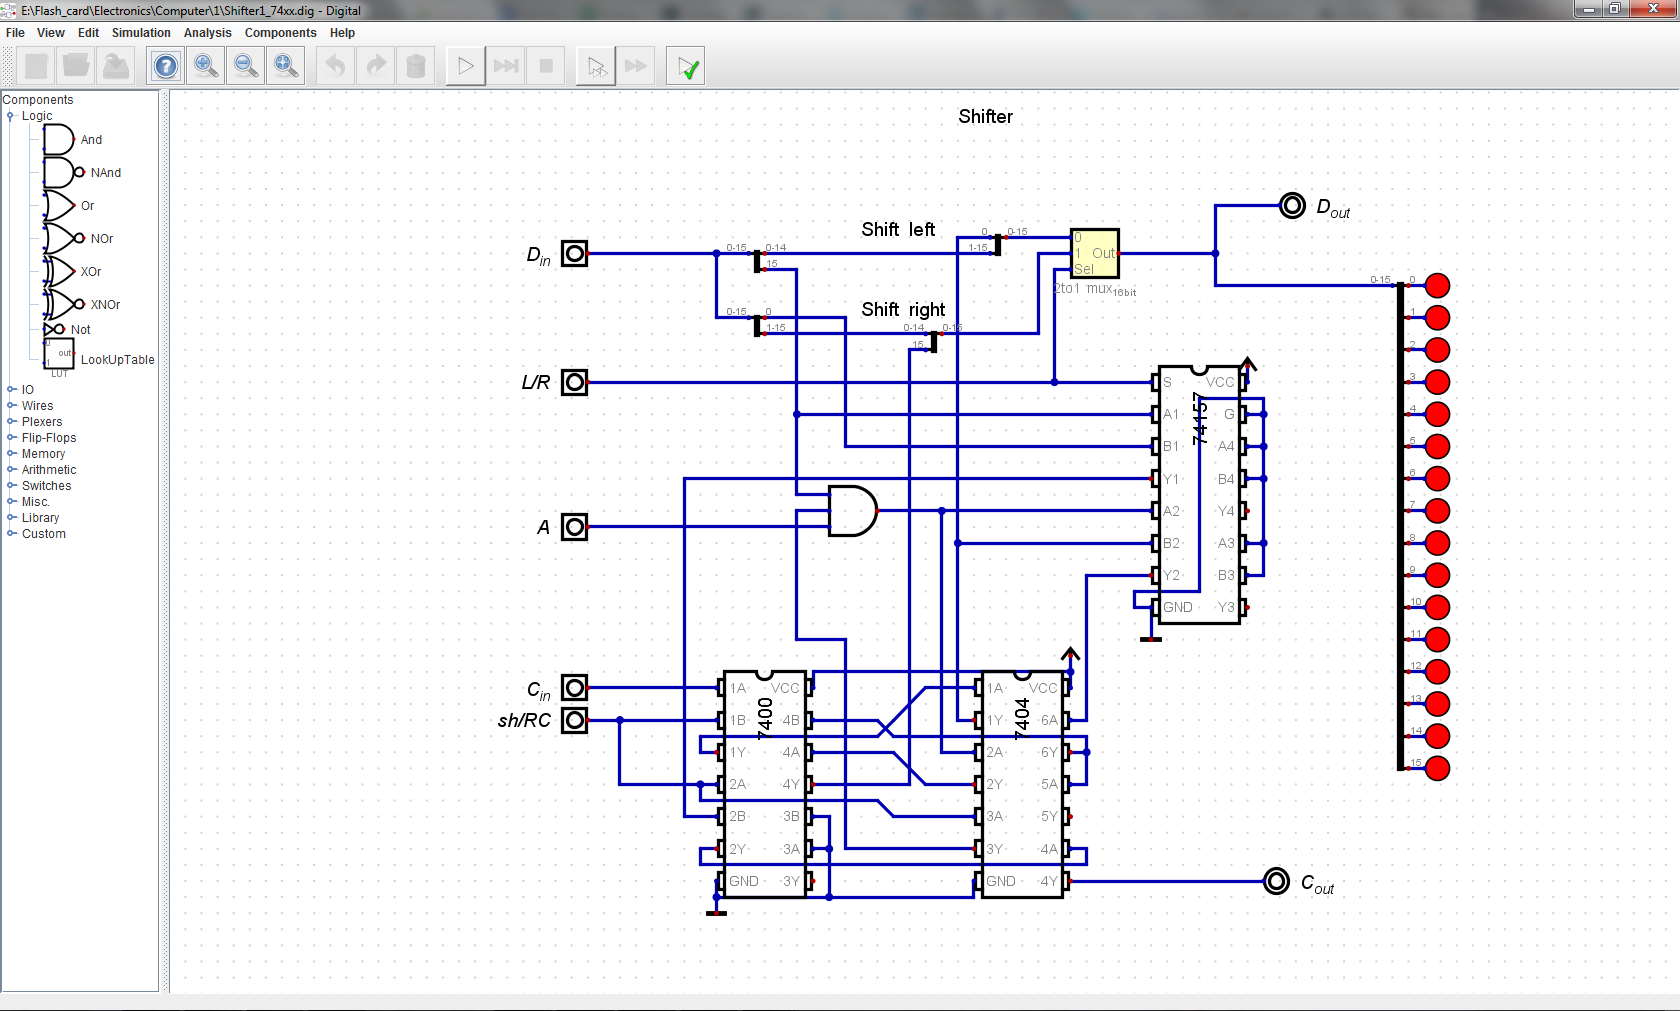 16 Bit Ttl Computer Complementary Inverter Circuit Diagram Fast Adder Takes In C A And B Outputs S Out It Is Comprised Of Four Chained 4 Units Constructed From Simple Logic Gates